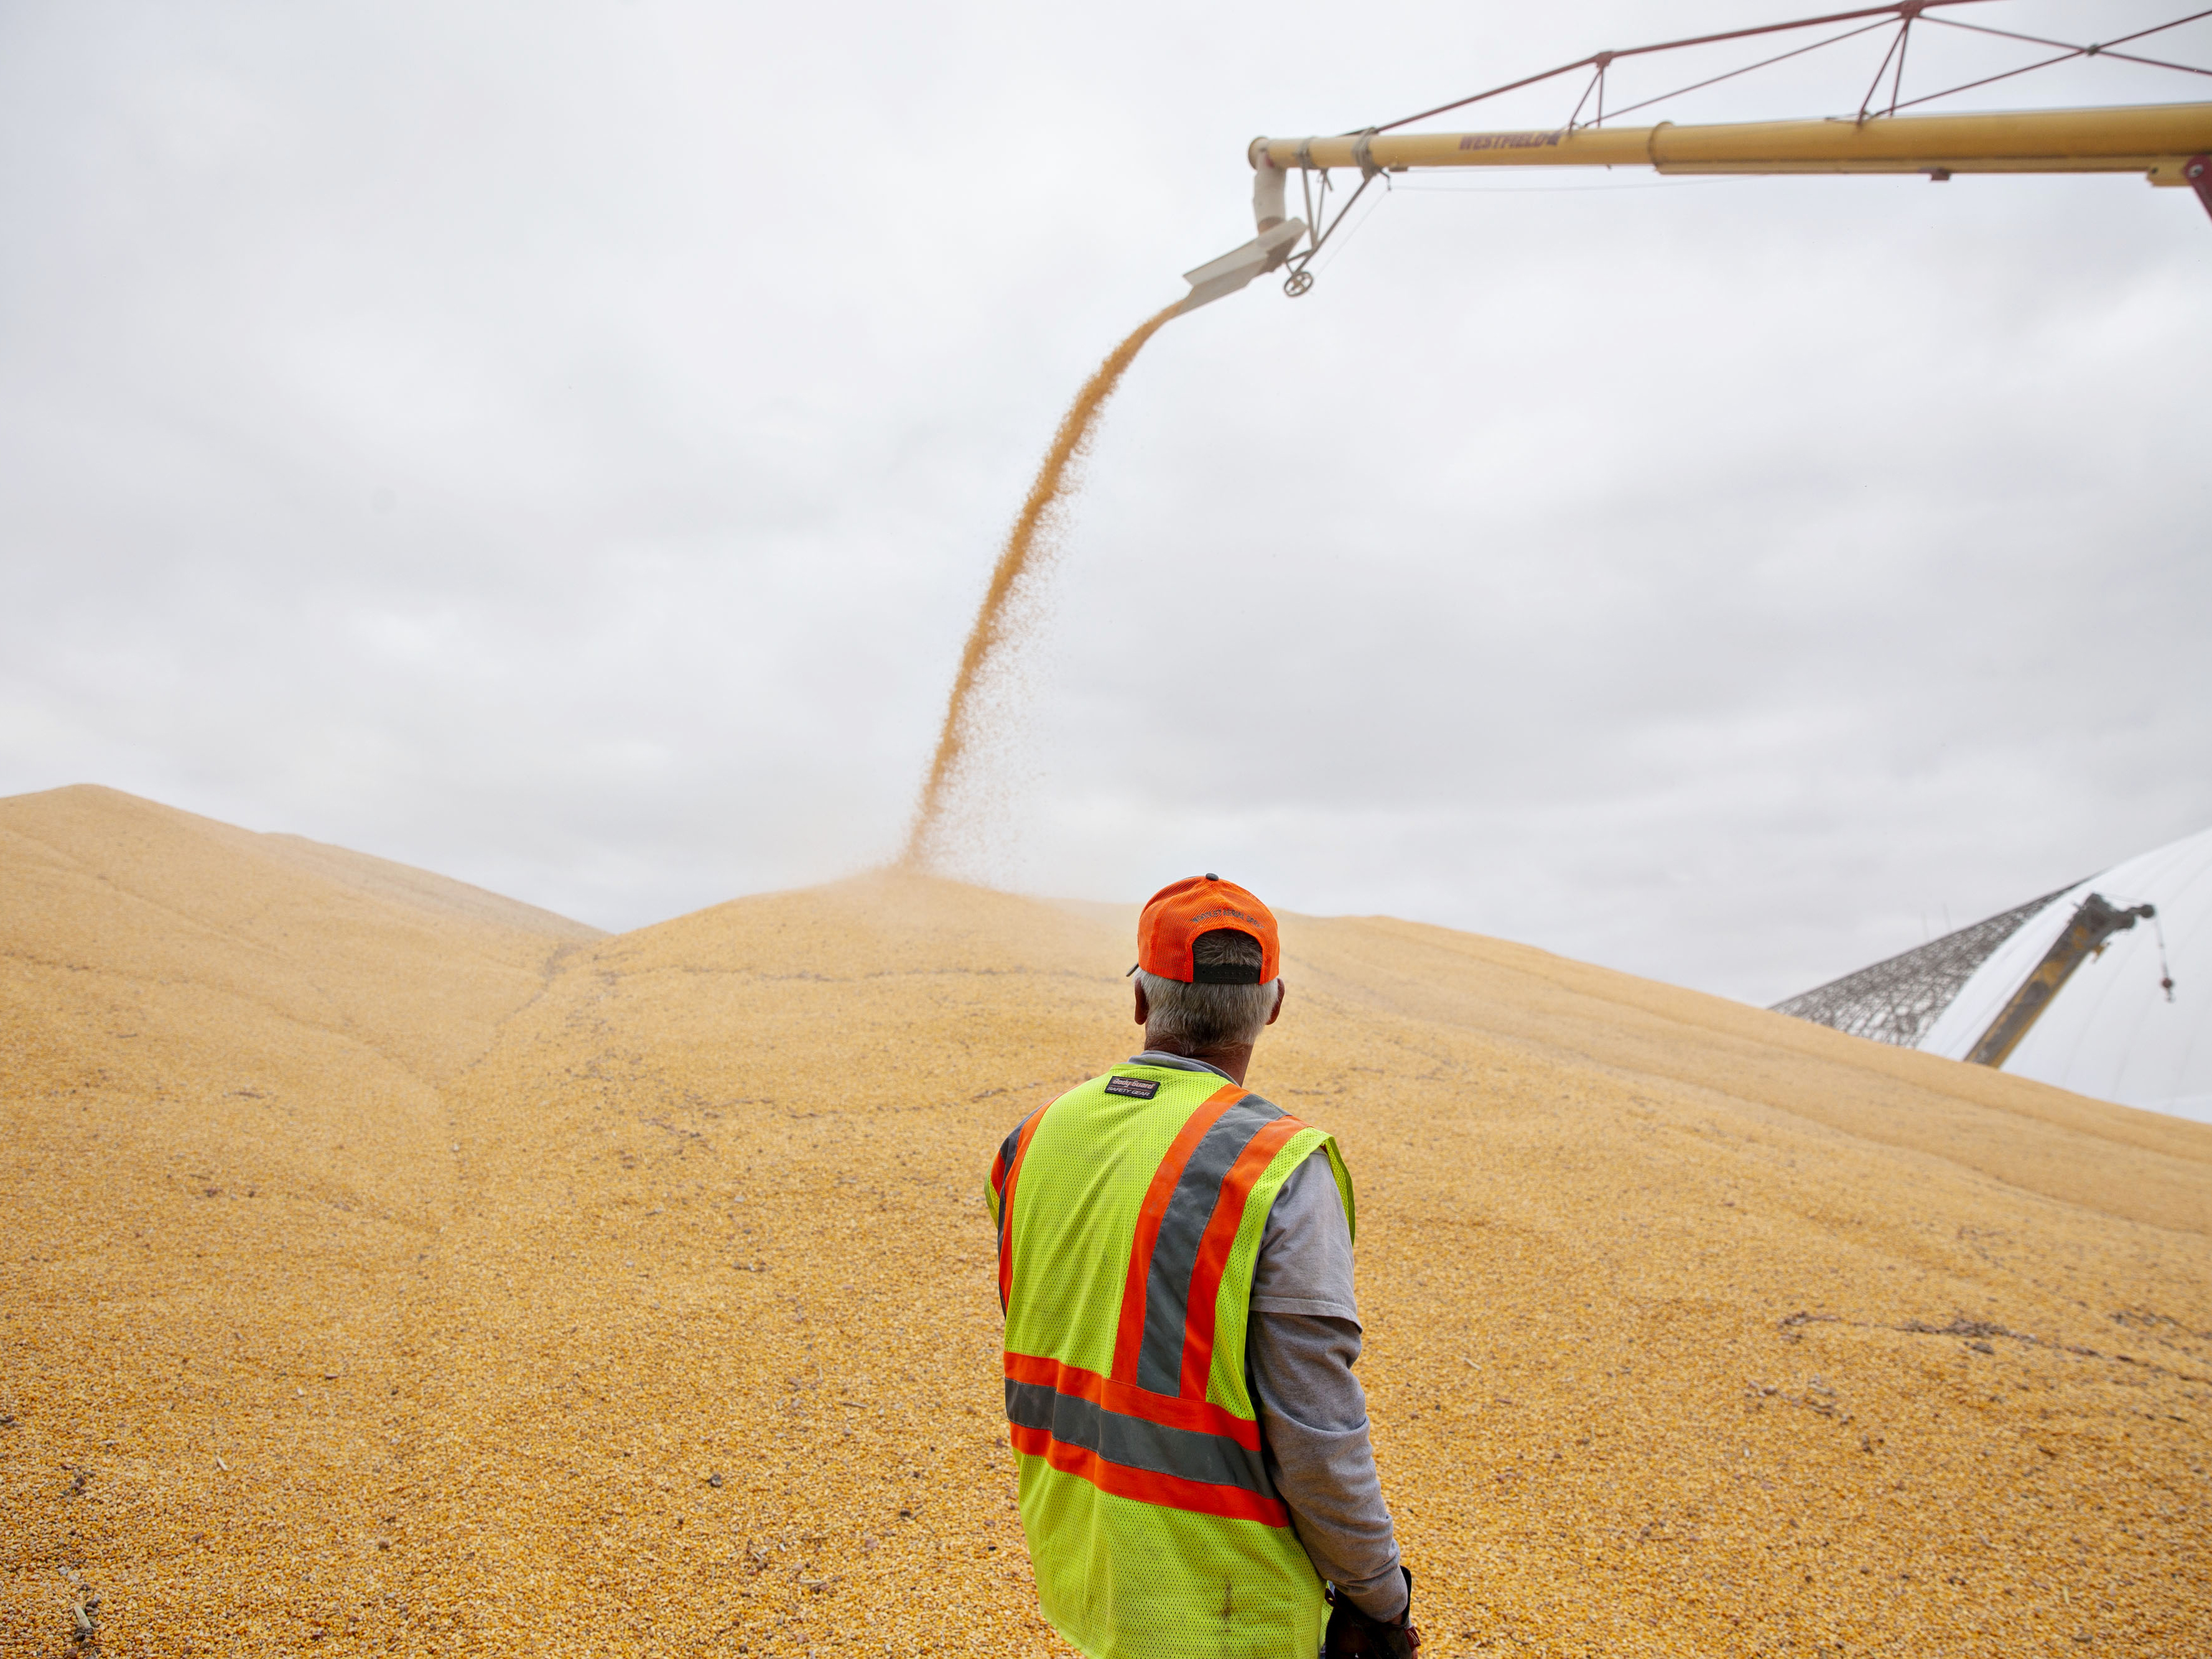 A Very Bad Day for U.S. Farmers: Exports, Sales, Incomes All Hit